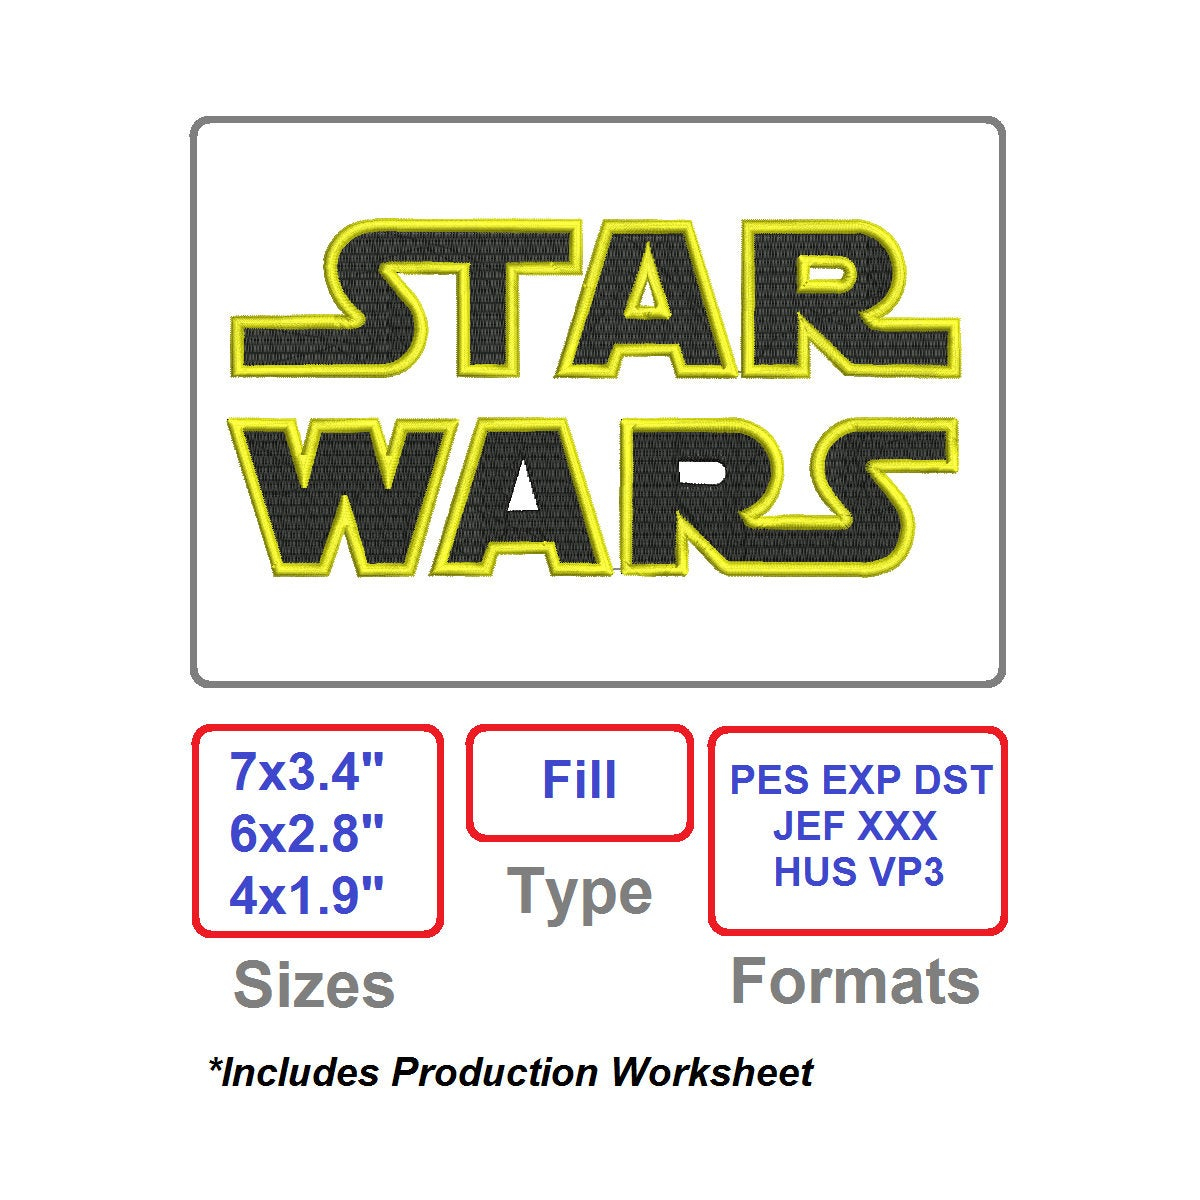 Star Wars Embroidery Pattern Embroidery Designs Star Wars Embroidery Pattern Disney